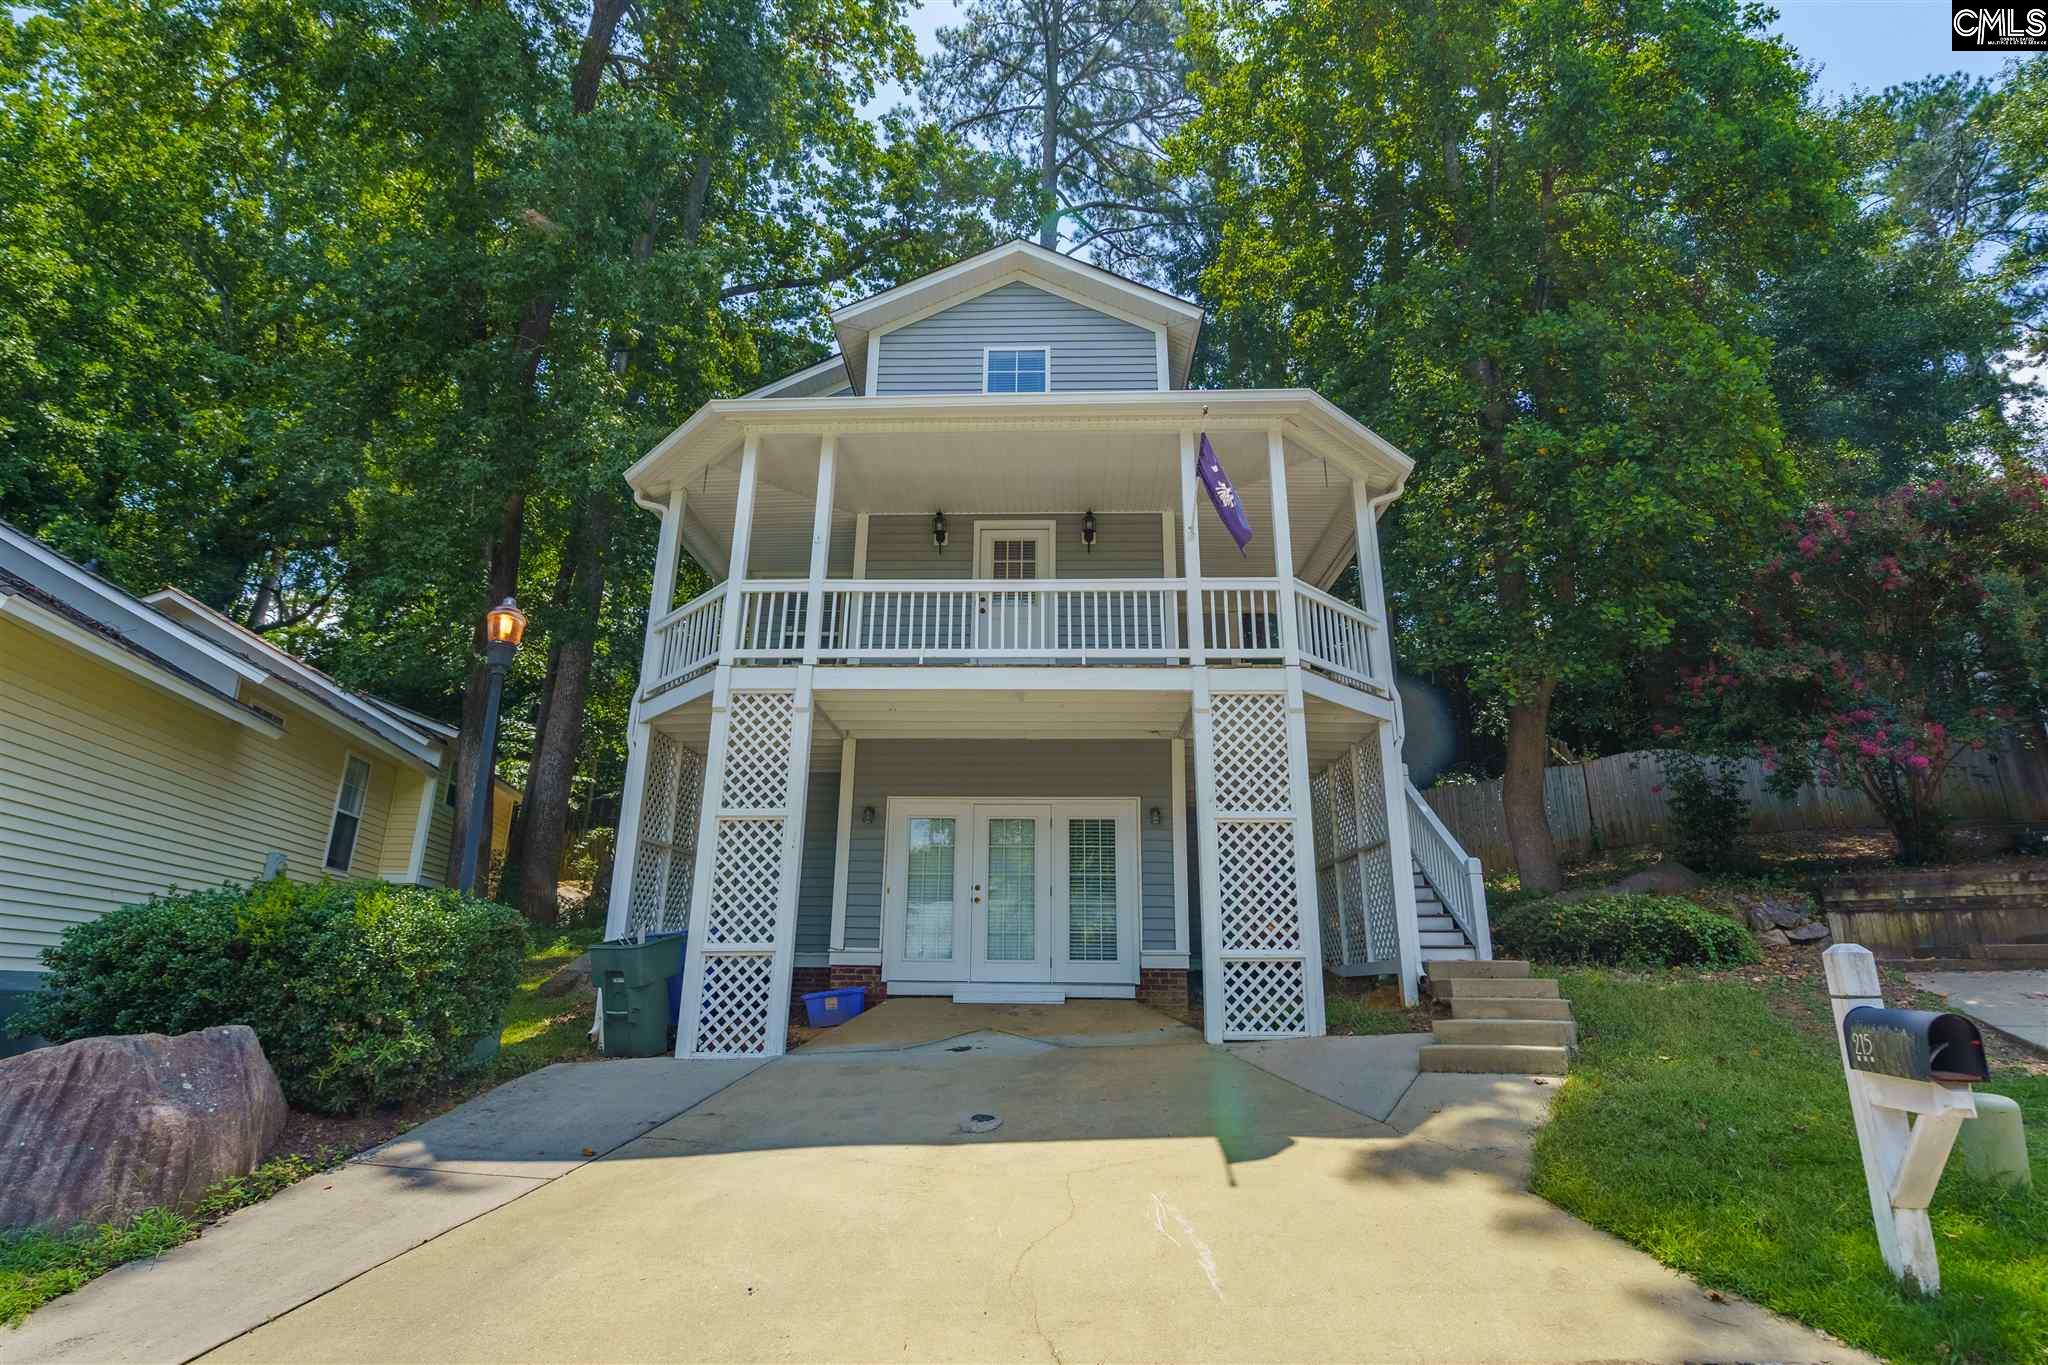 215 Candleberry Columbia, SC 29201